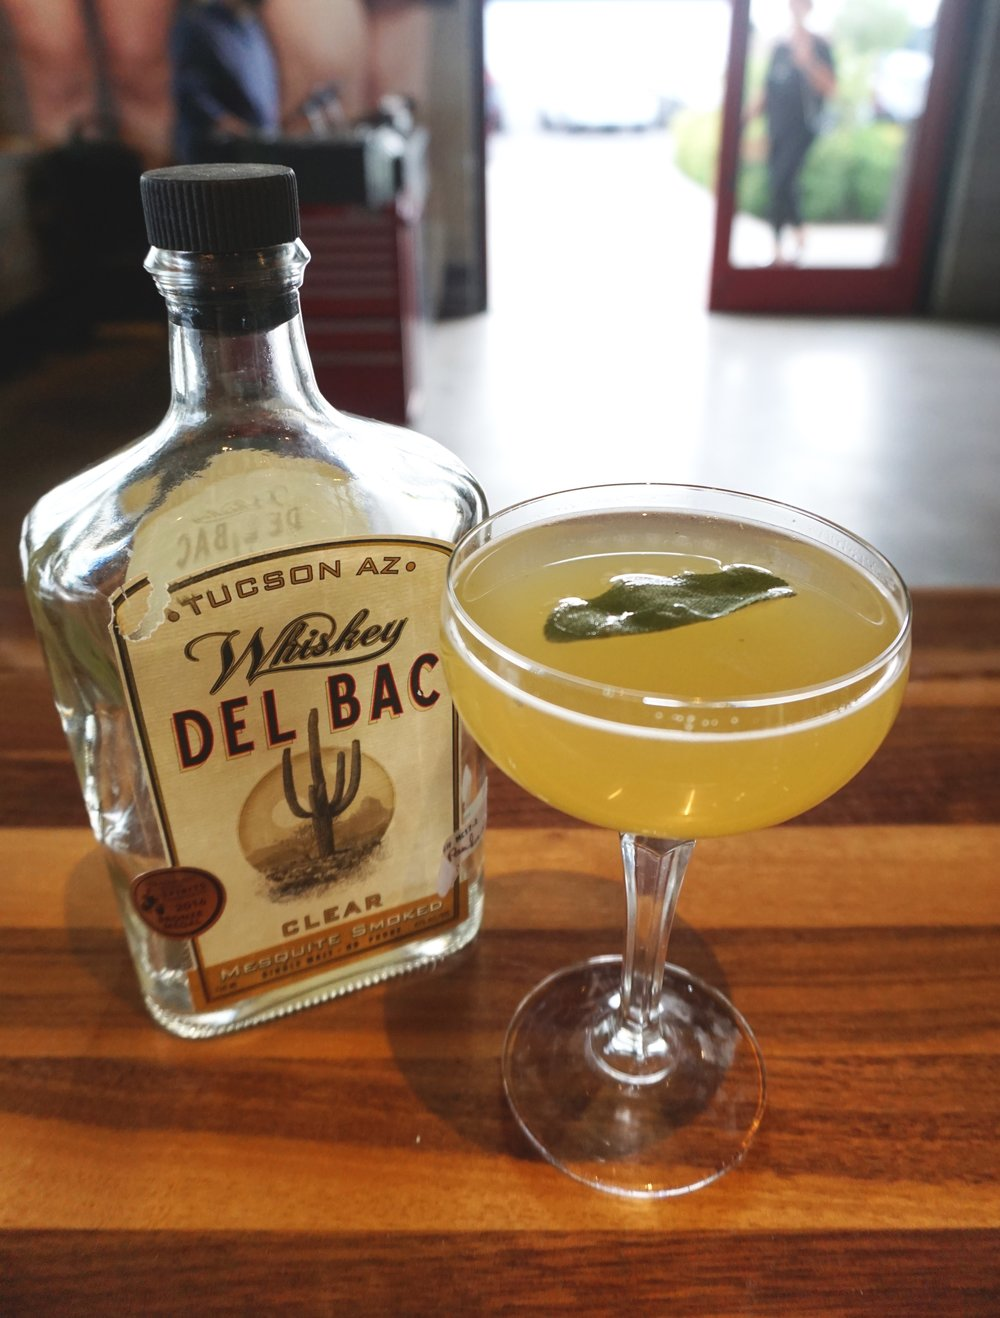 The Spirited        Sage  - 1.5 Oz Whiskey Del Bac- Clear2 Muddled Sage Leaves.75 Oz Fresh Lemon Juice.5 Oz Honey Syrup.5 Oz Licor 43.25 Oz Green Chartreuse